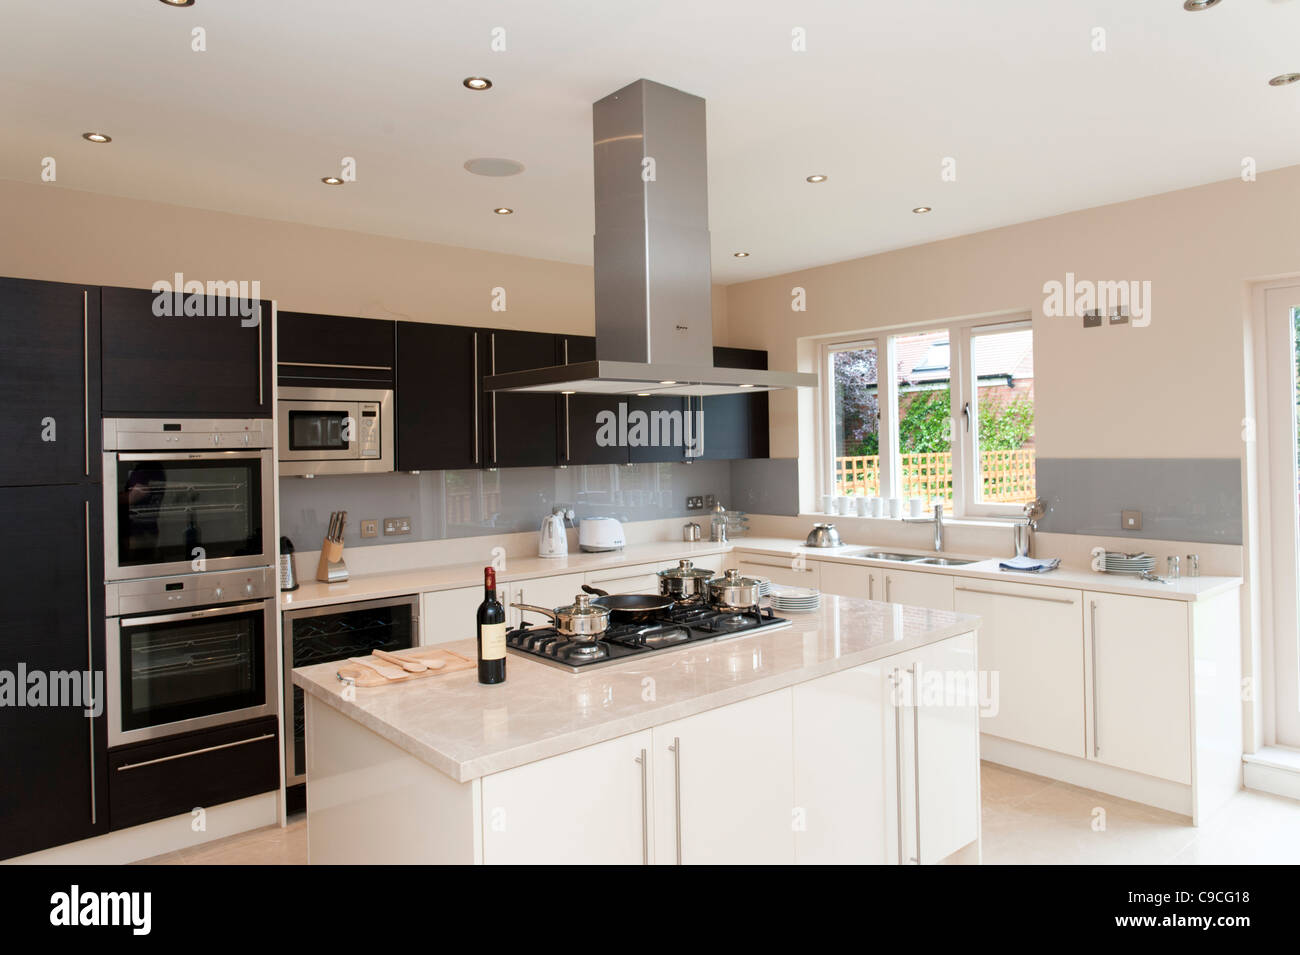 Fitted Kitchens Stockfotos & Fitted Kitchens Bilder - Alamy